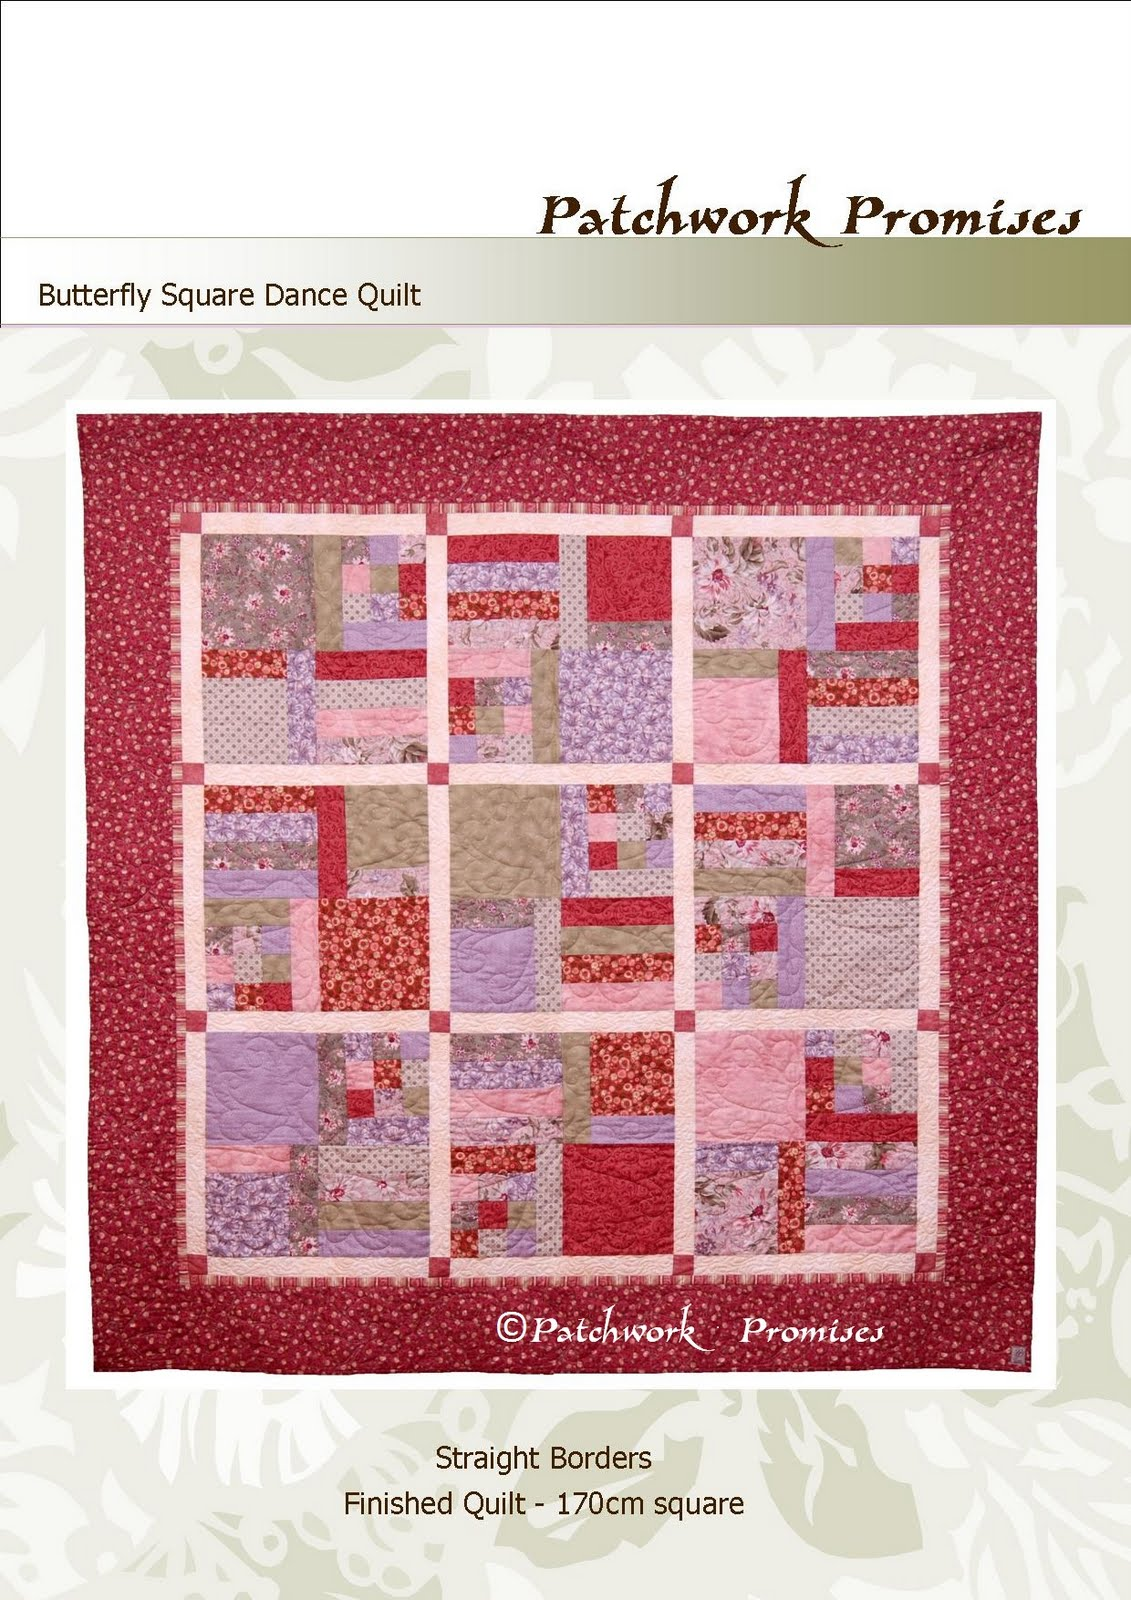 Patchwork Promises Another Give Awaybutterfly Square Dance